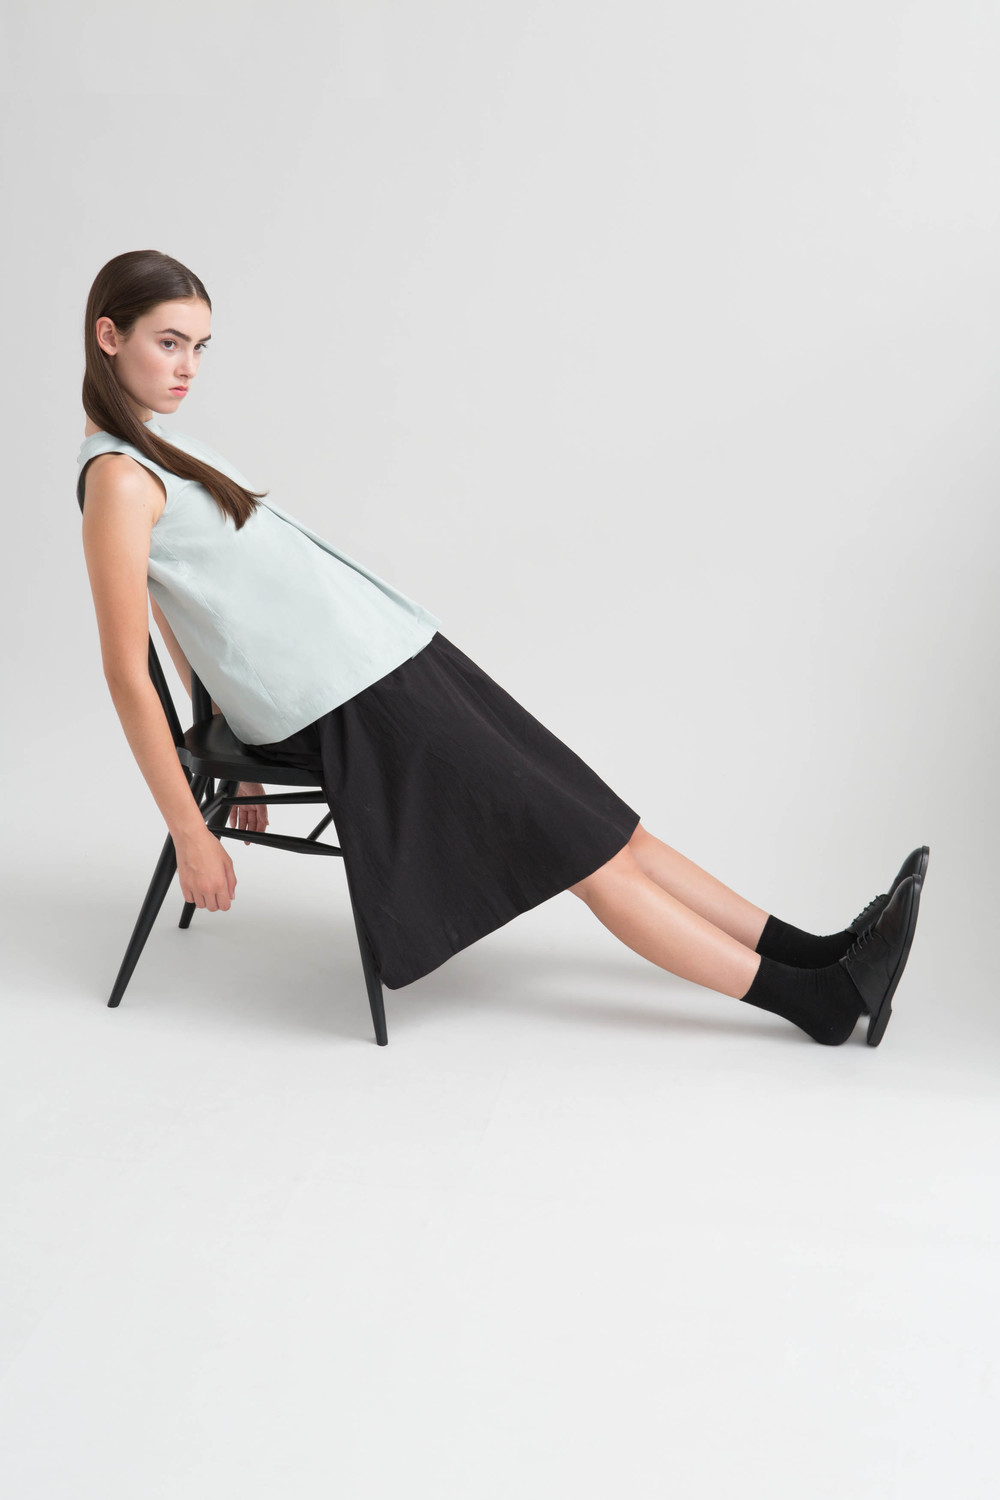 OuurMedia_OuurCollectionSS15_03.jpg